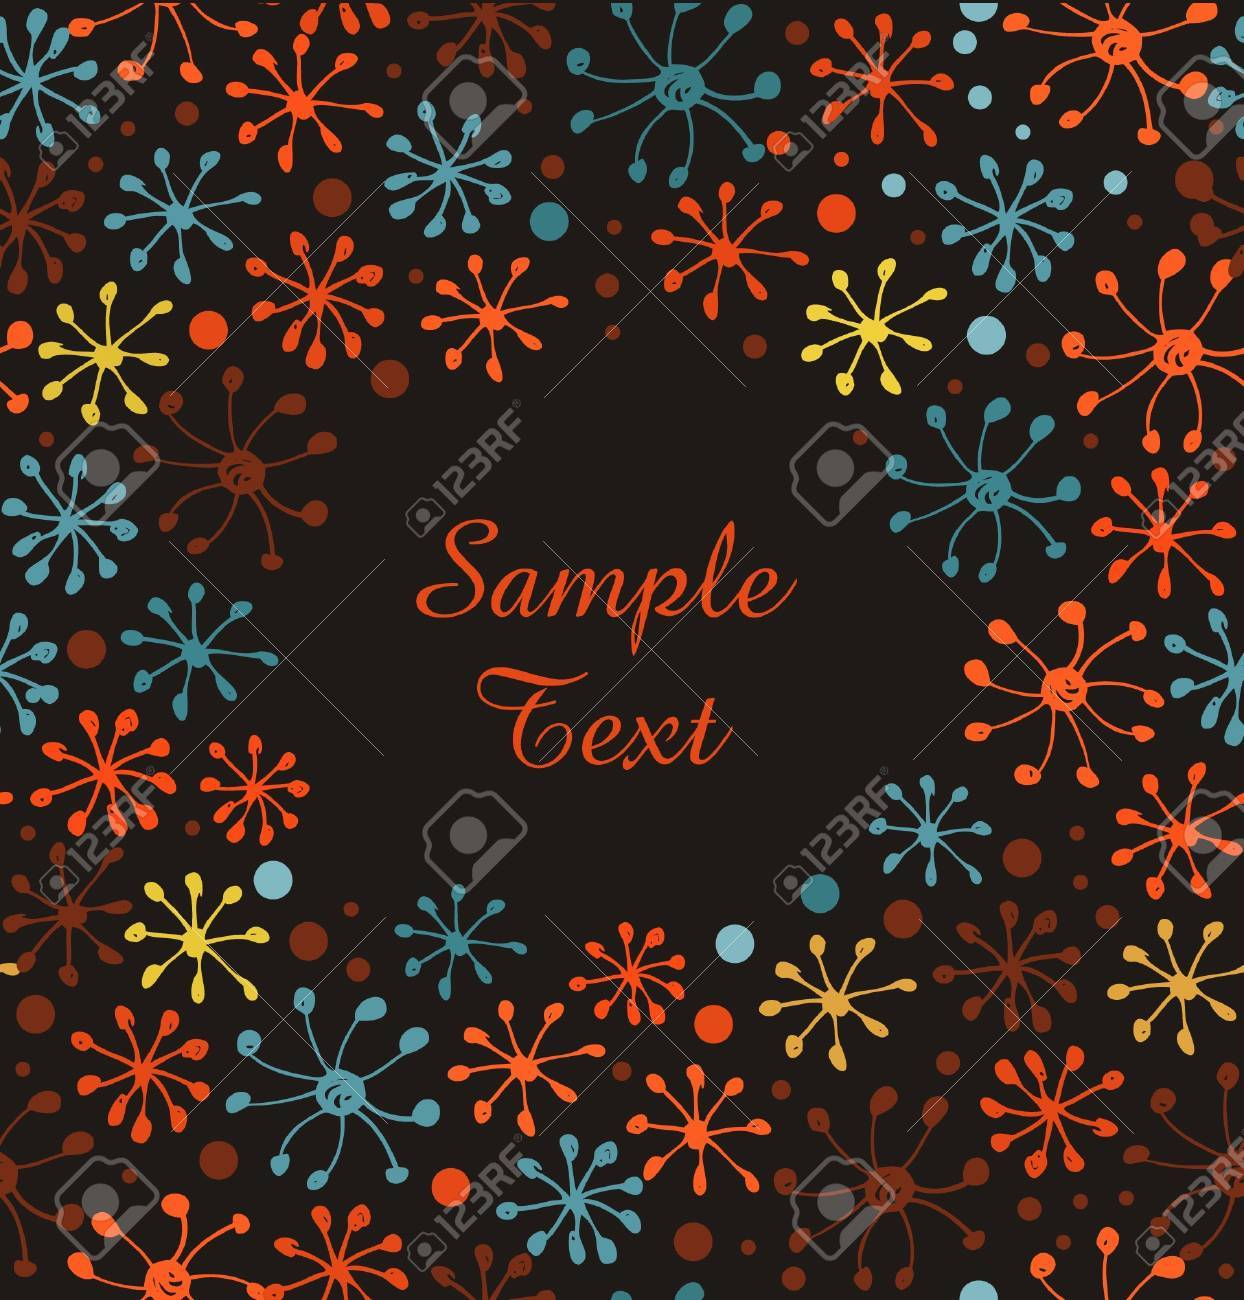 Snowflakes banner. Decorative cute hand drawn border. Doodle dot cover Stock Vector - 17088530